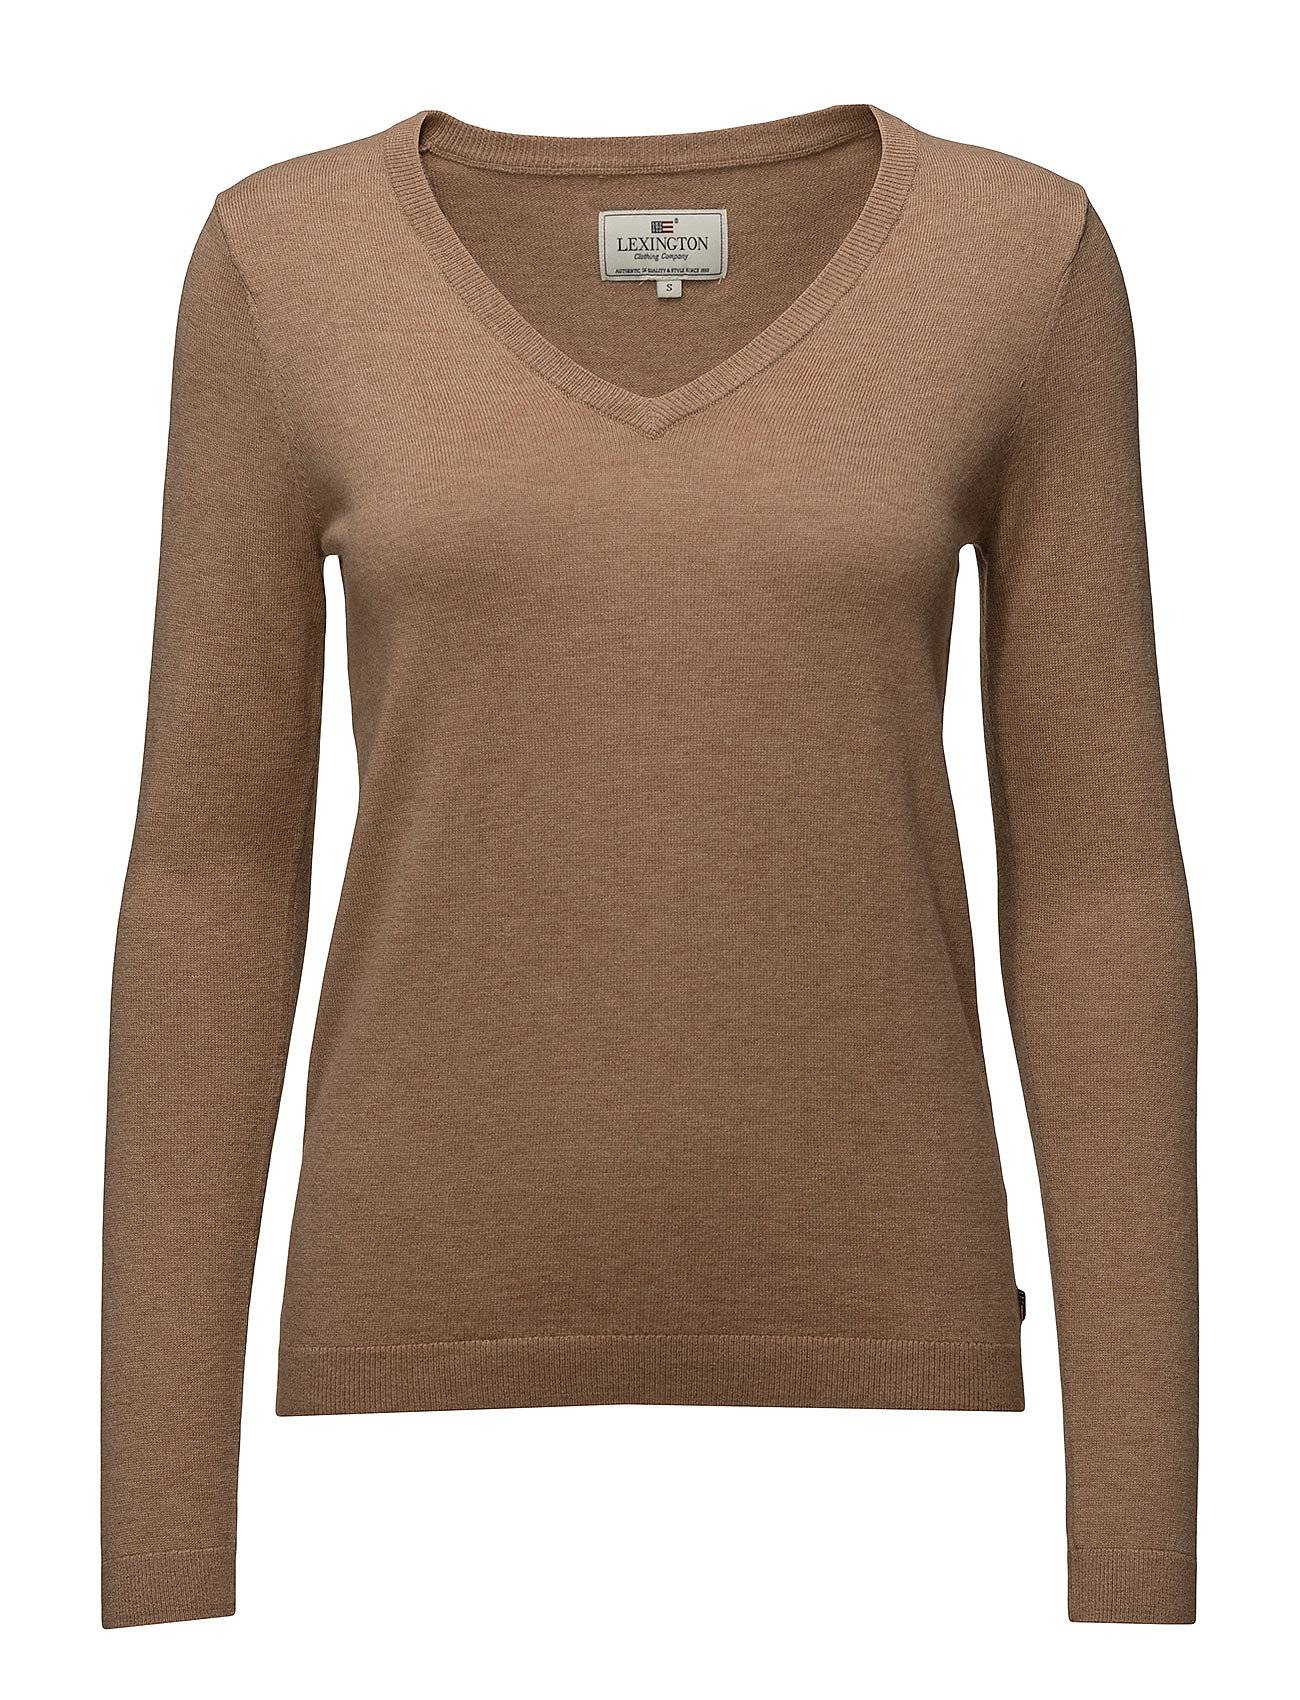 Lexington Clothing Madaleine V-Neck Sweater